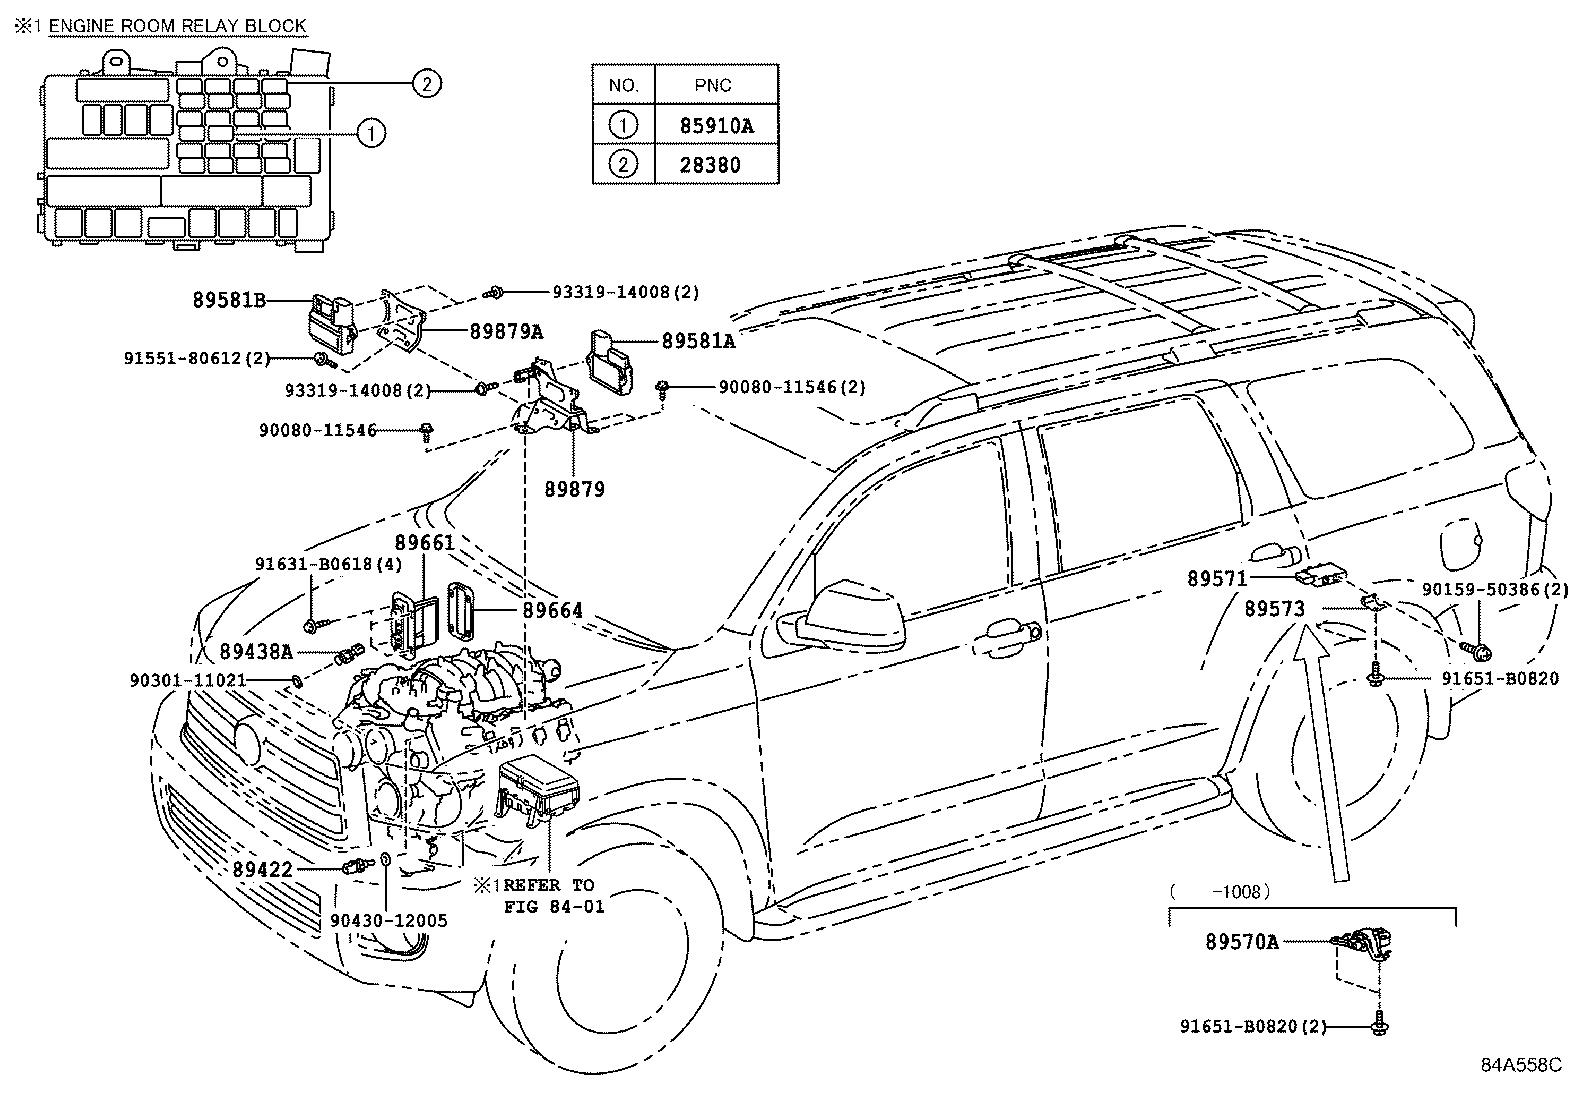 Toyota Sequoia Engine Control Module Electrical System